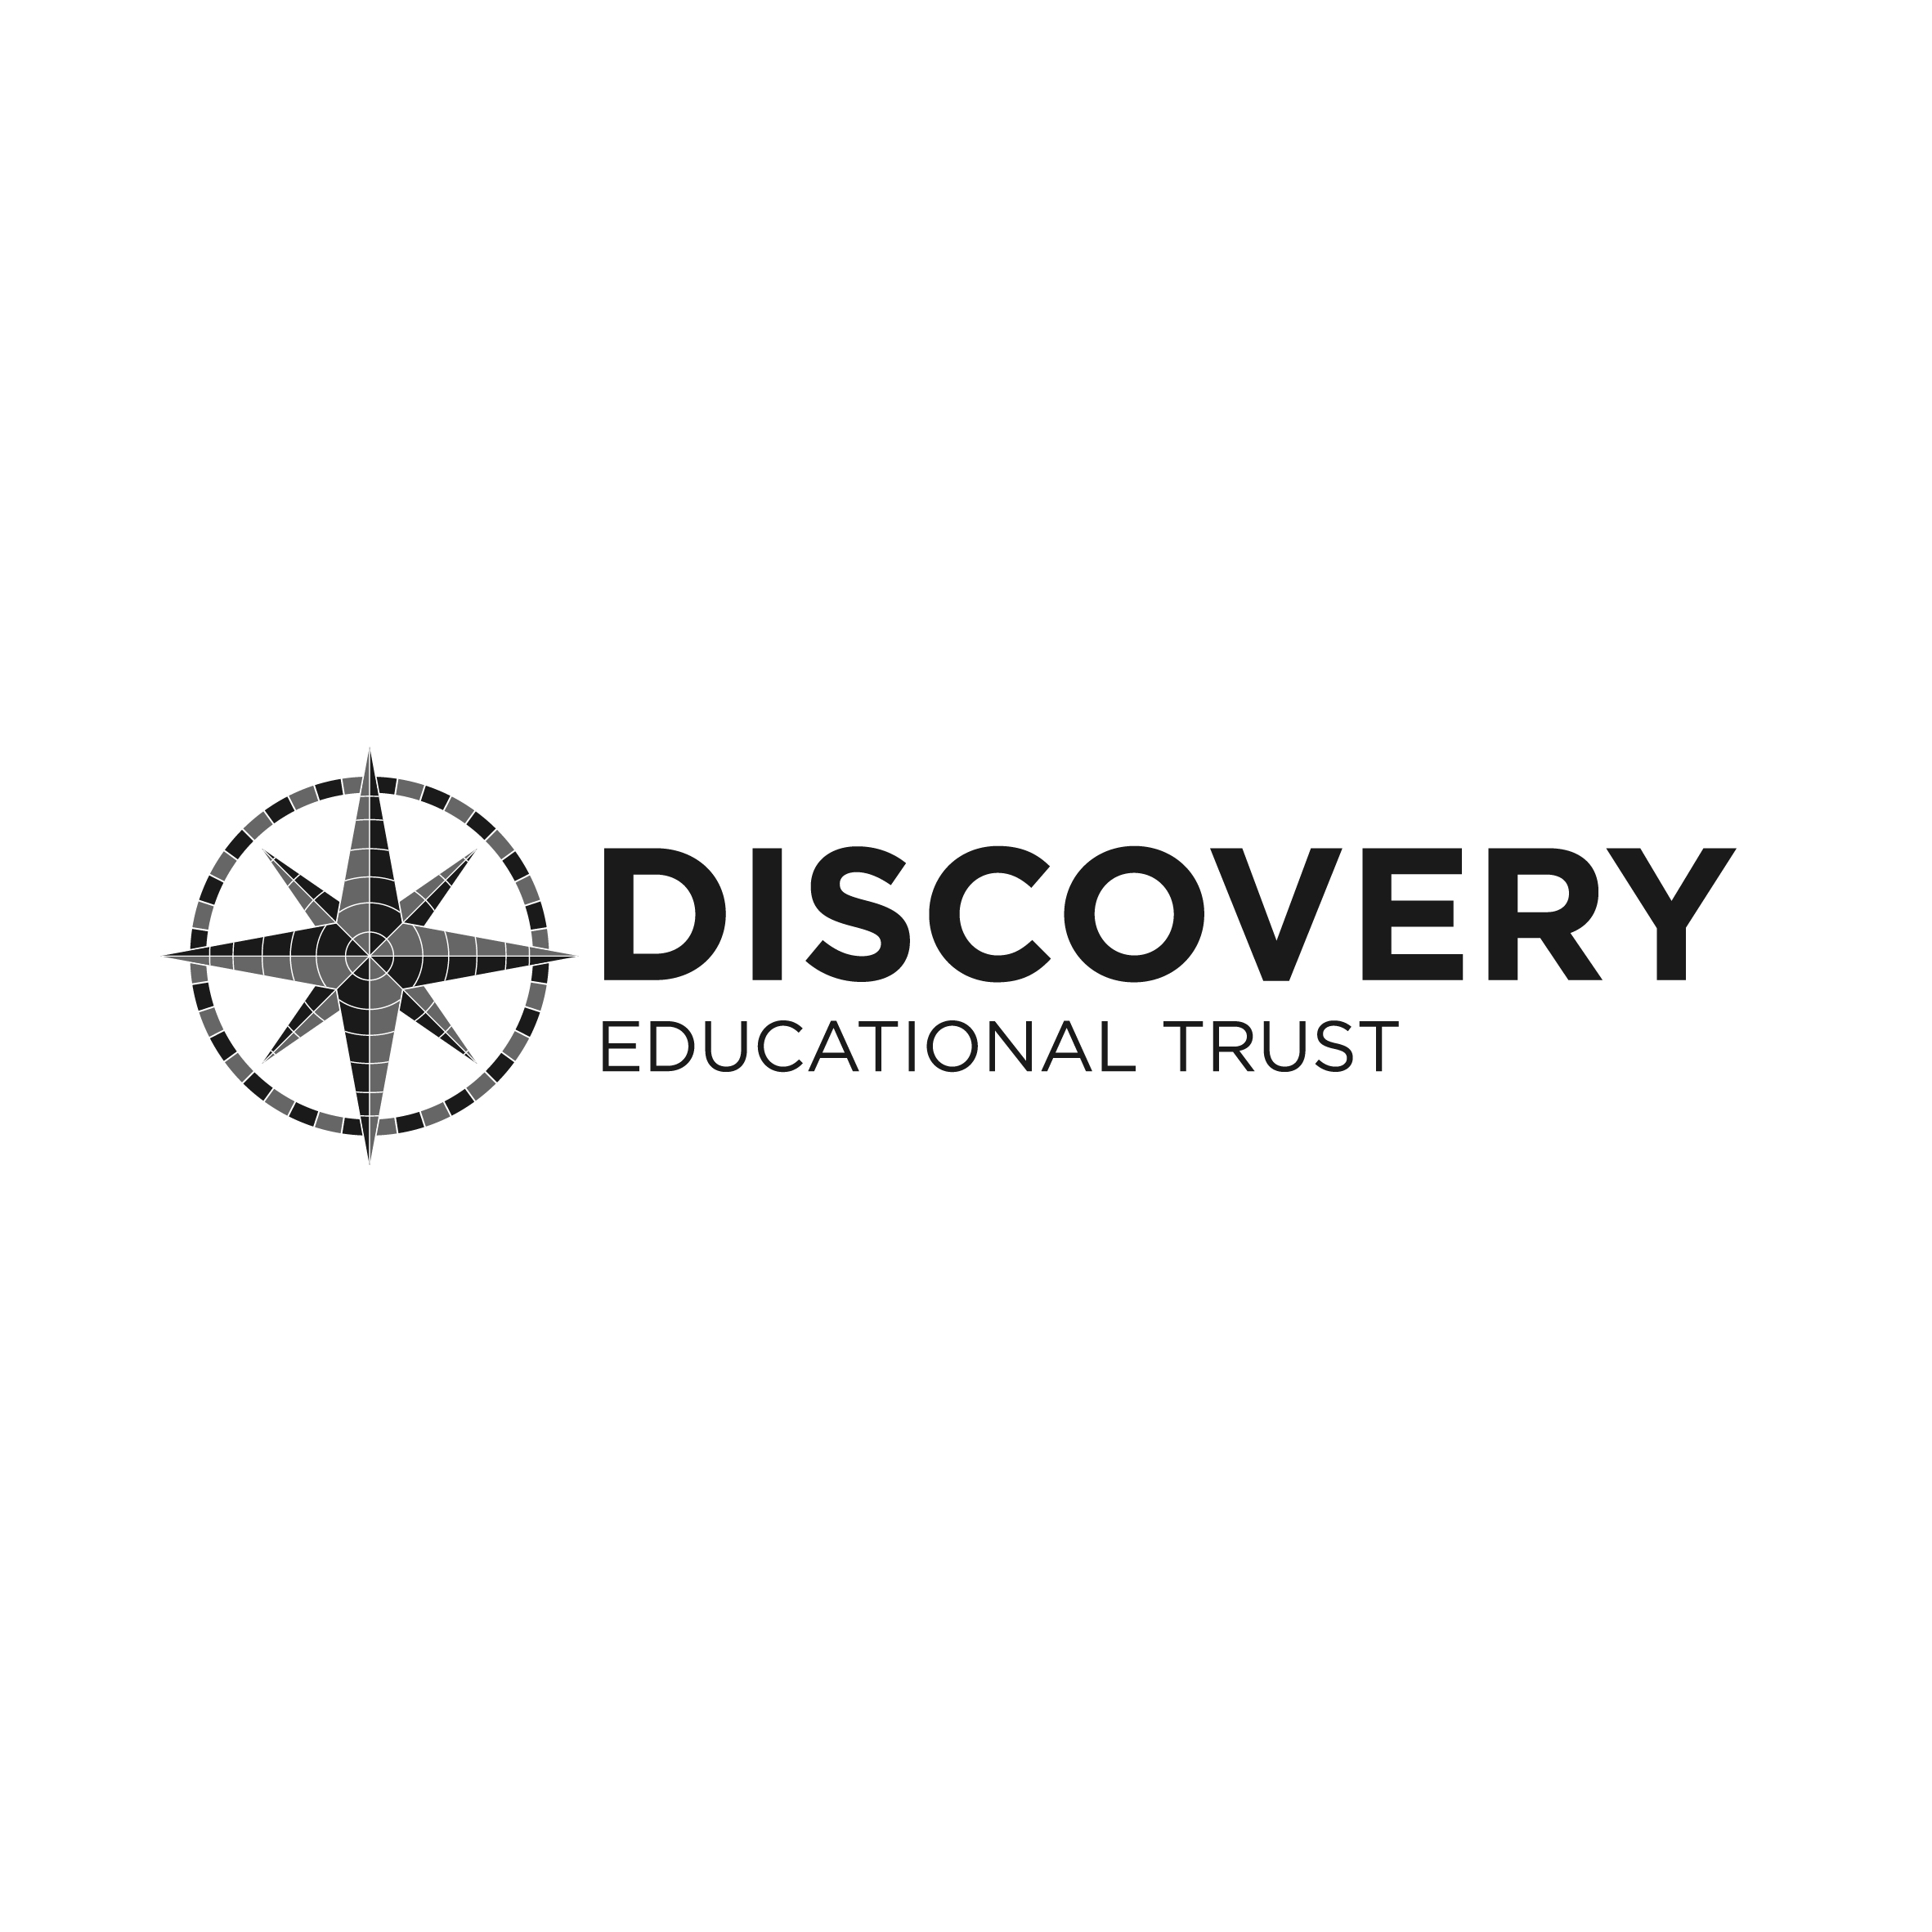 Discovery Educational Trust